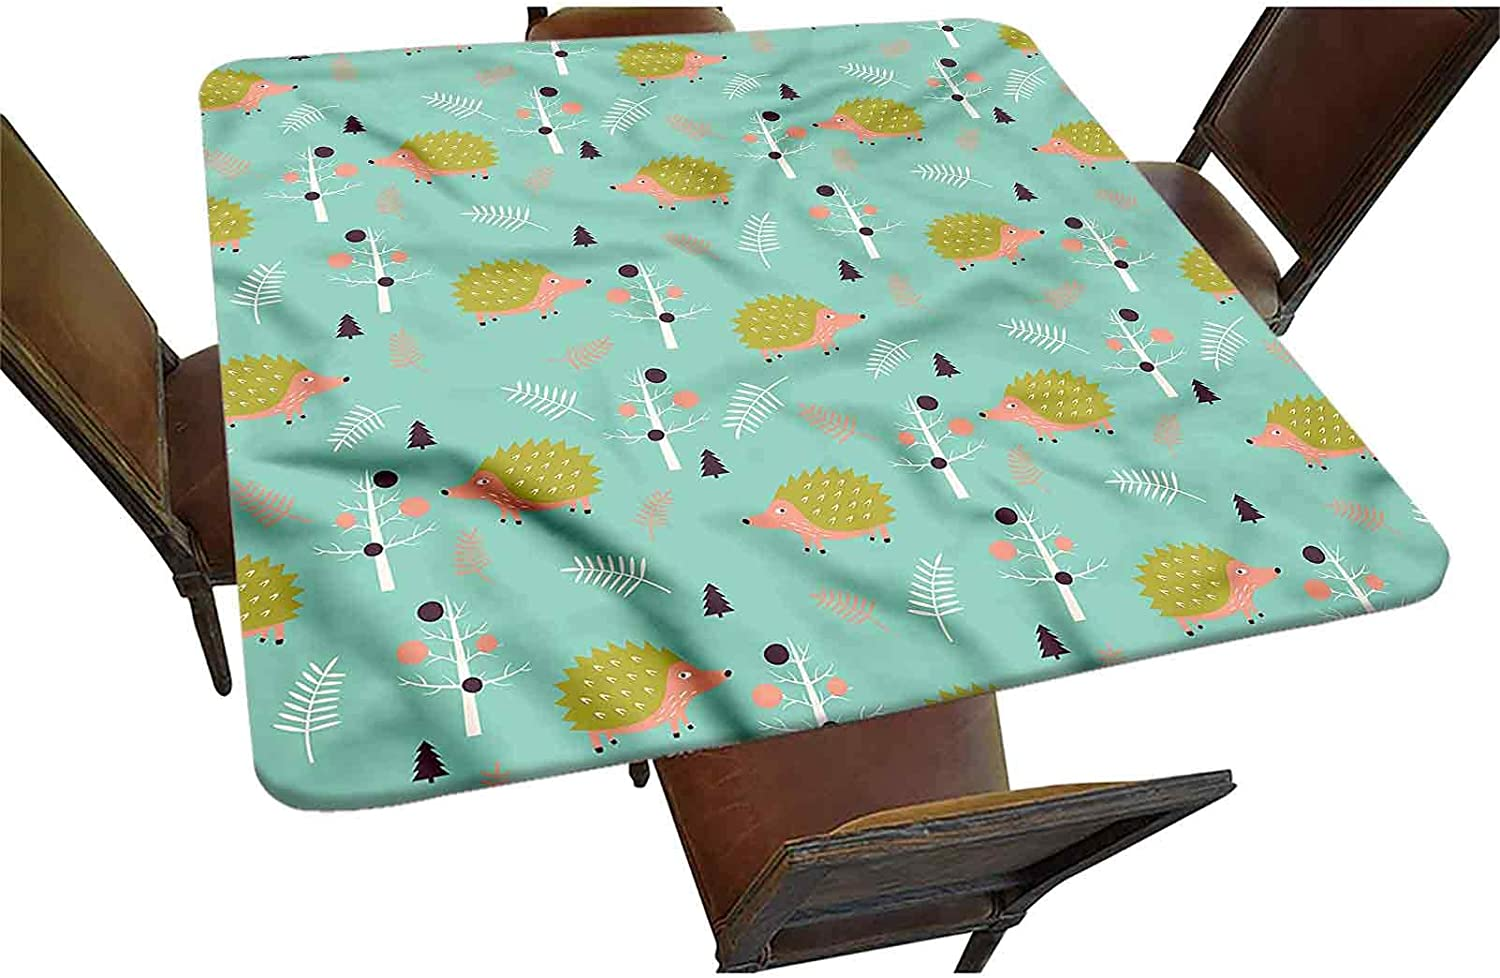 Decorative Elastic Edged Attention brand Square Fitted Countryside Tablecloth Li Ranking TOP3